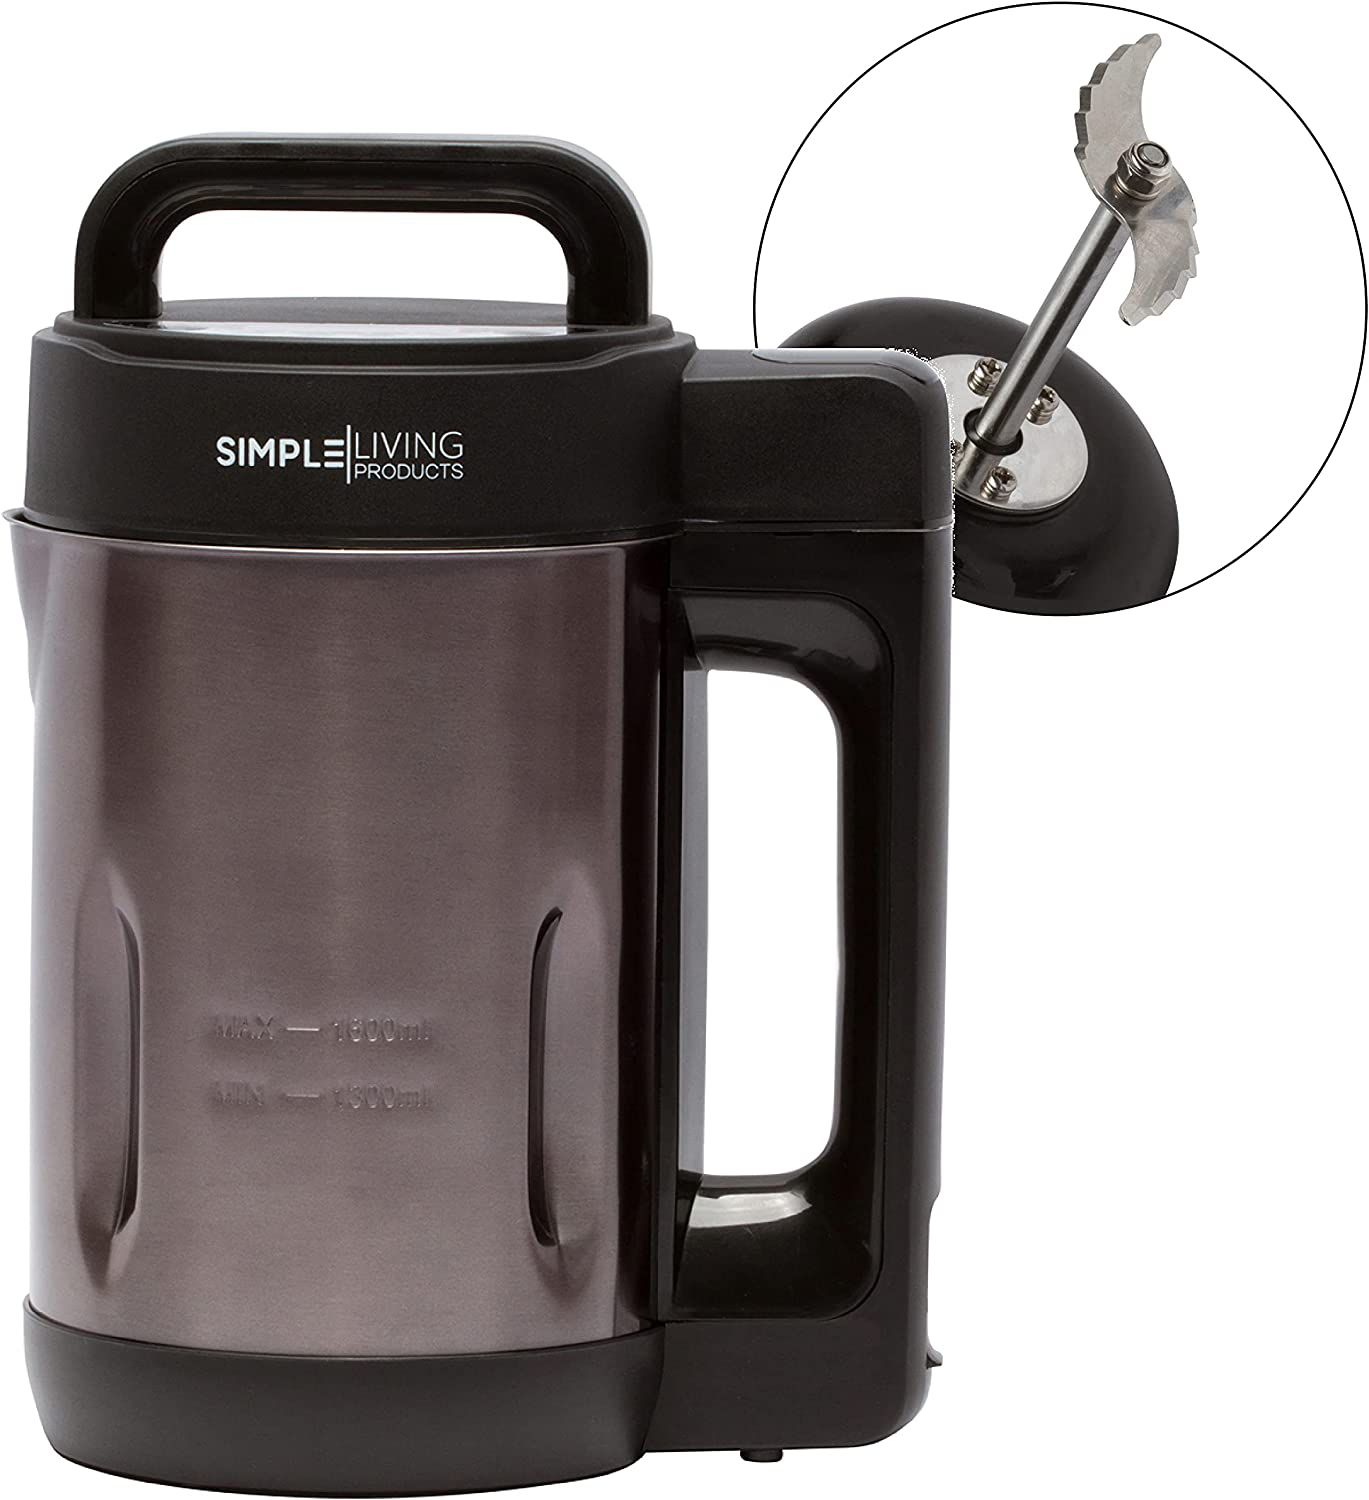 Simple Living Products 1.6-Liter Deluxe Portable Soup Maker